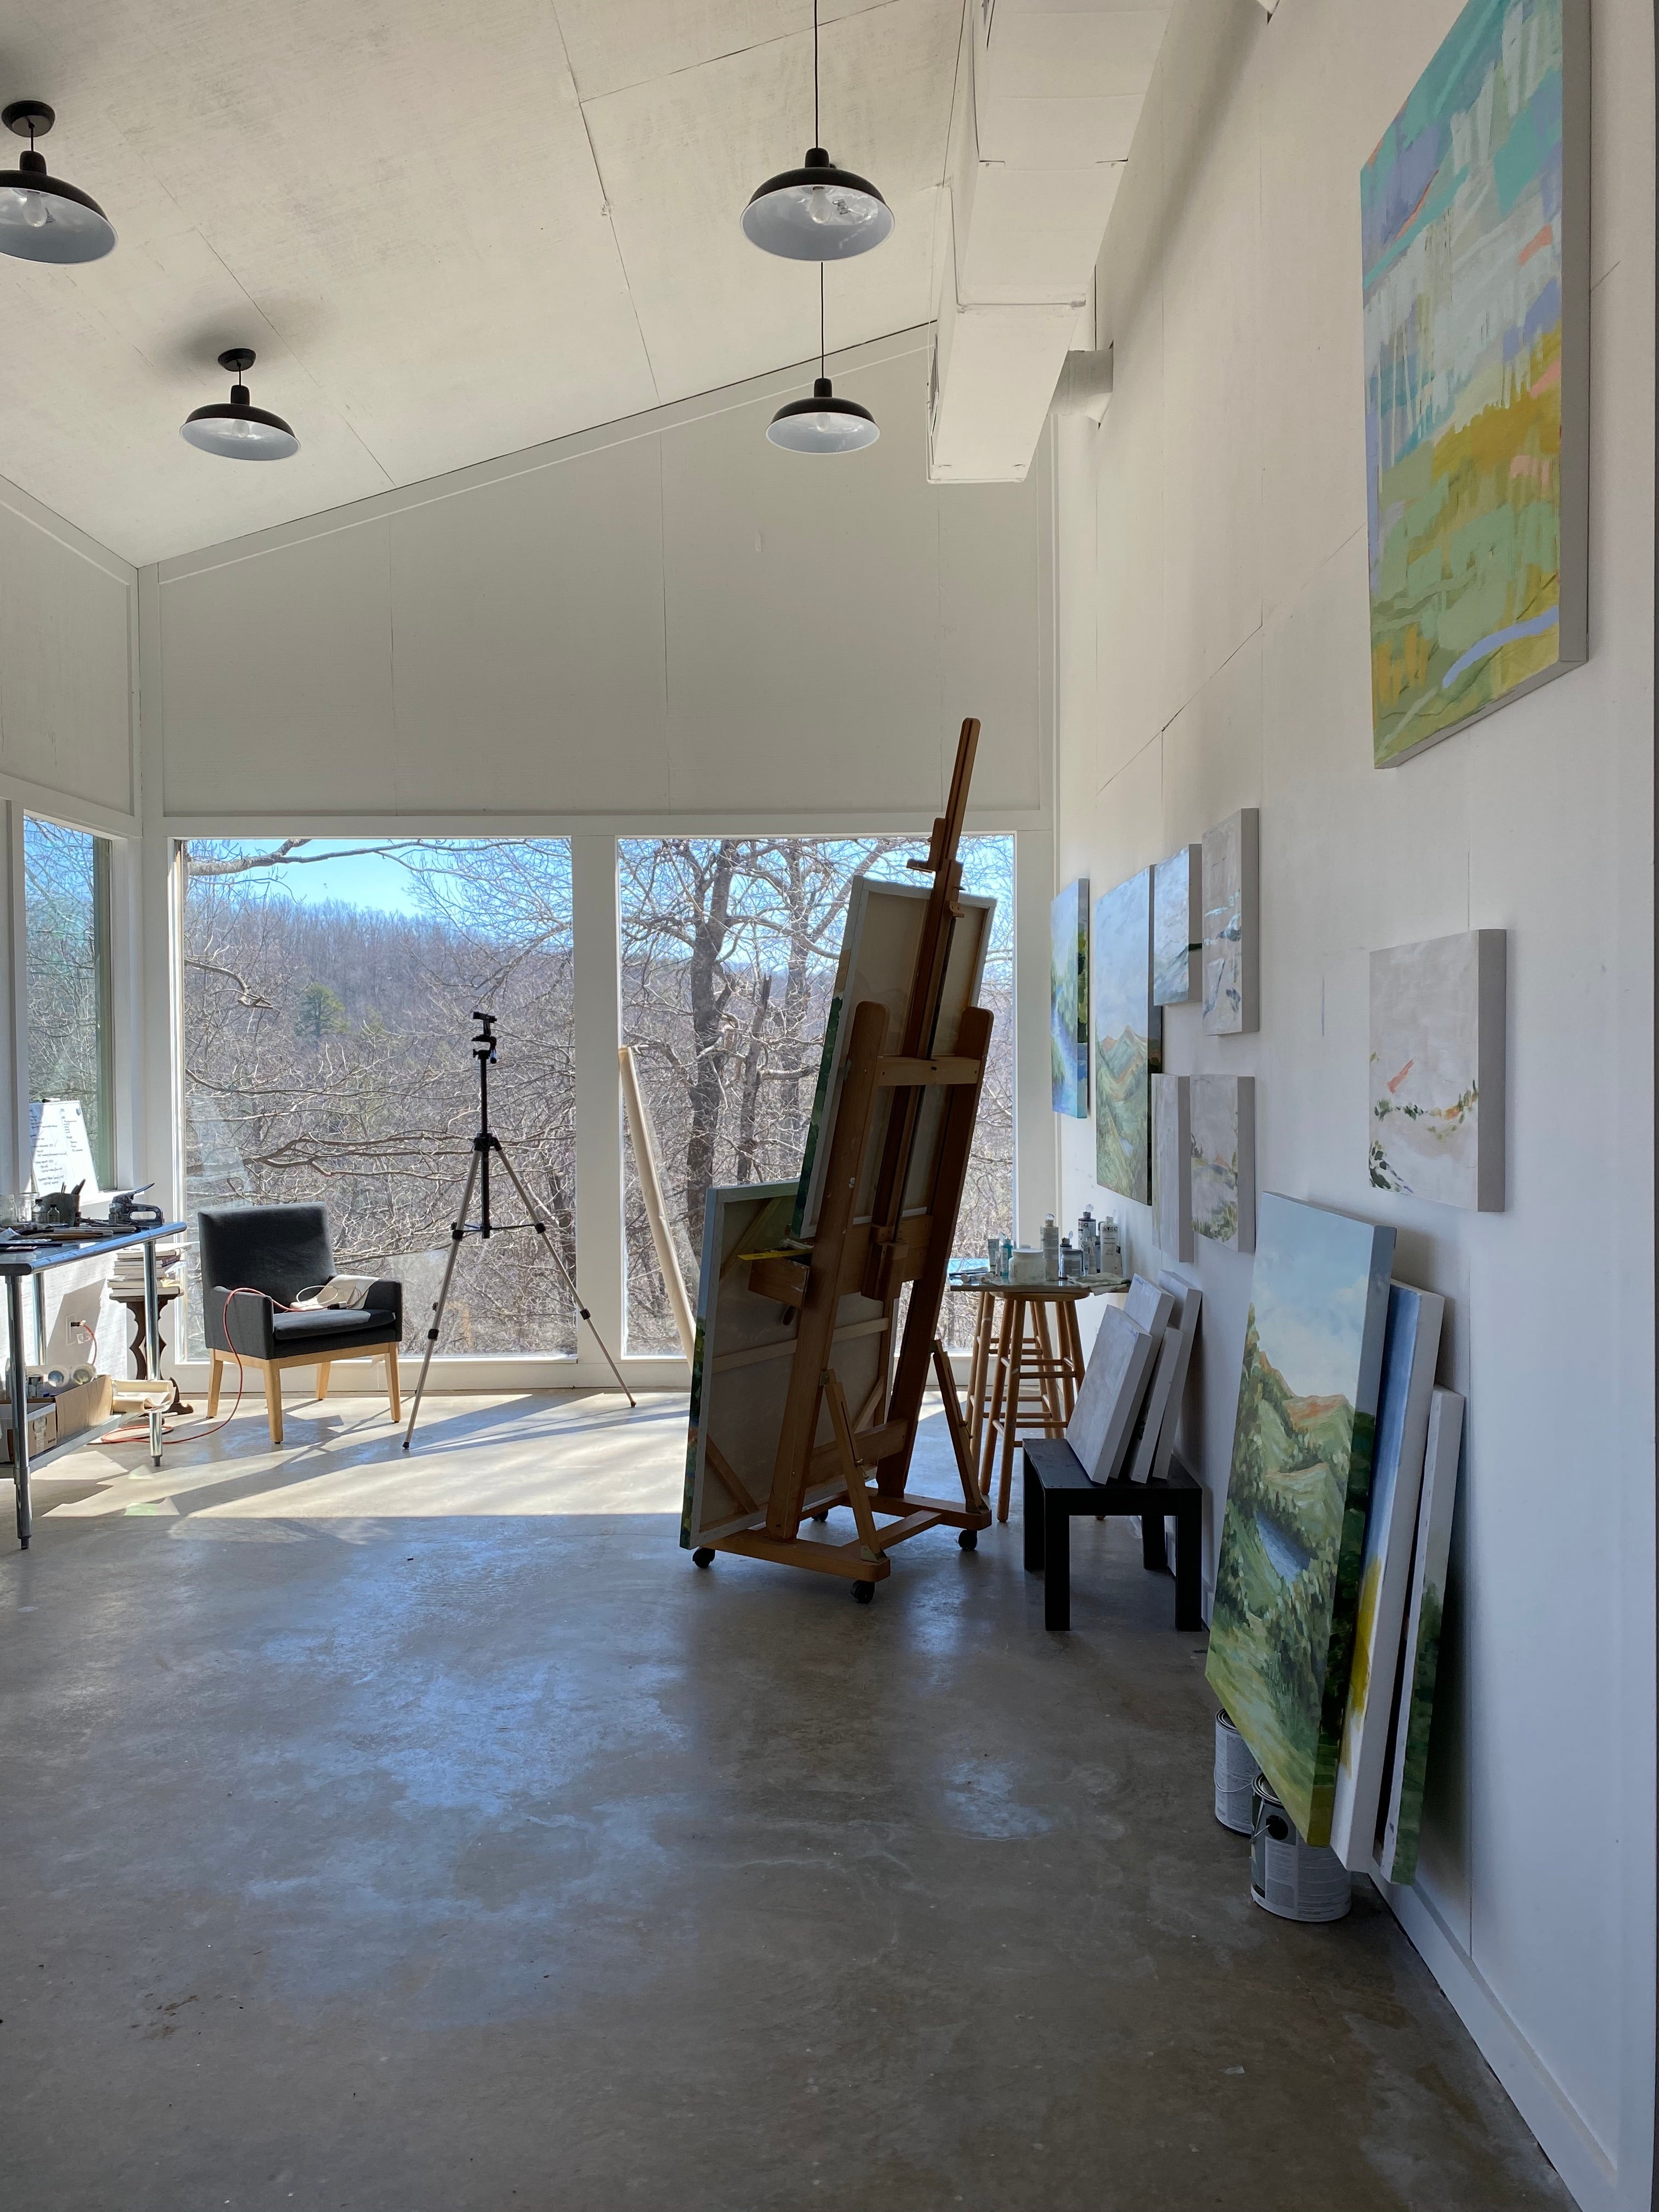 A beautiful day in the studio